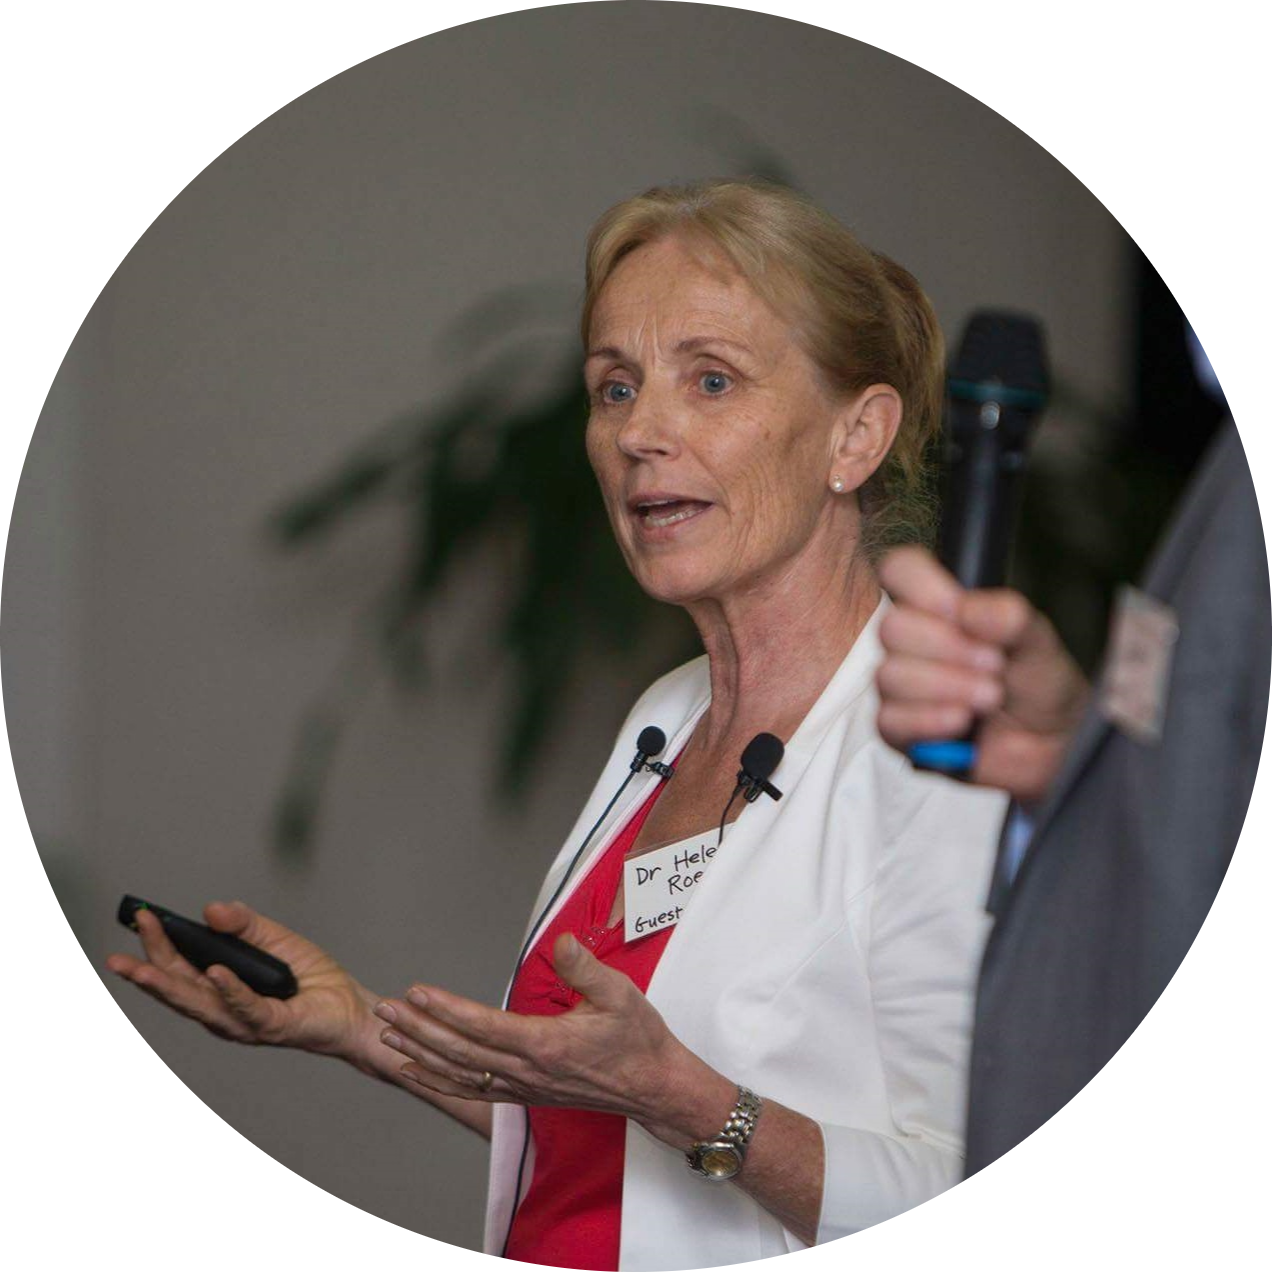 Dr Heleen Roex presents at Raw Events Symposium